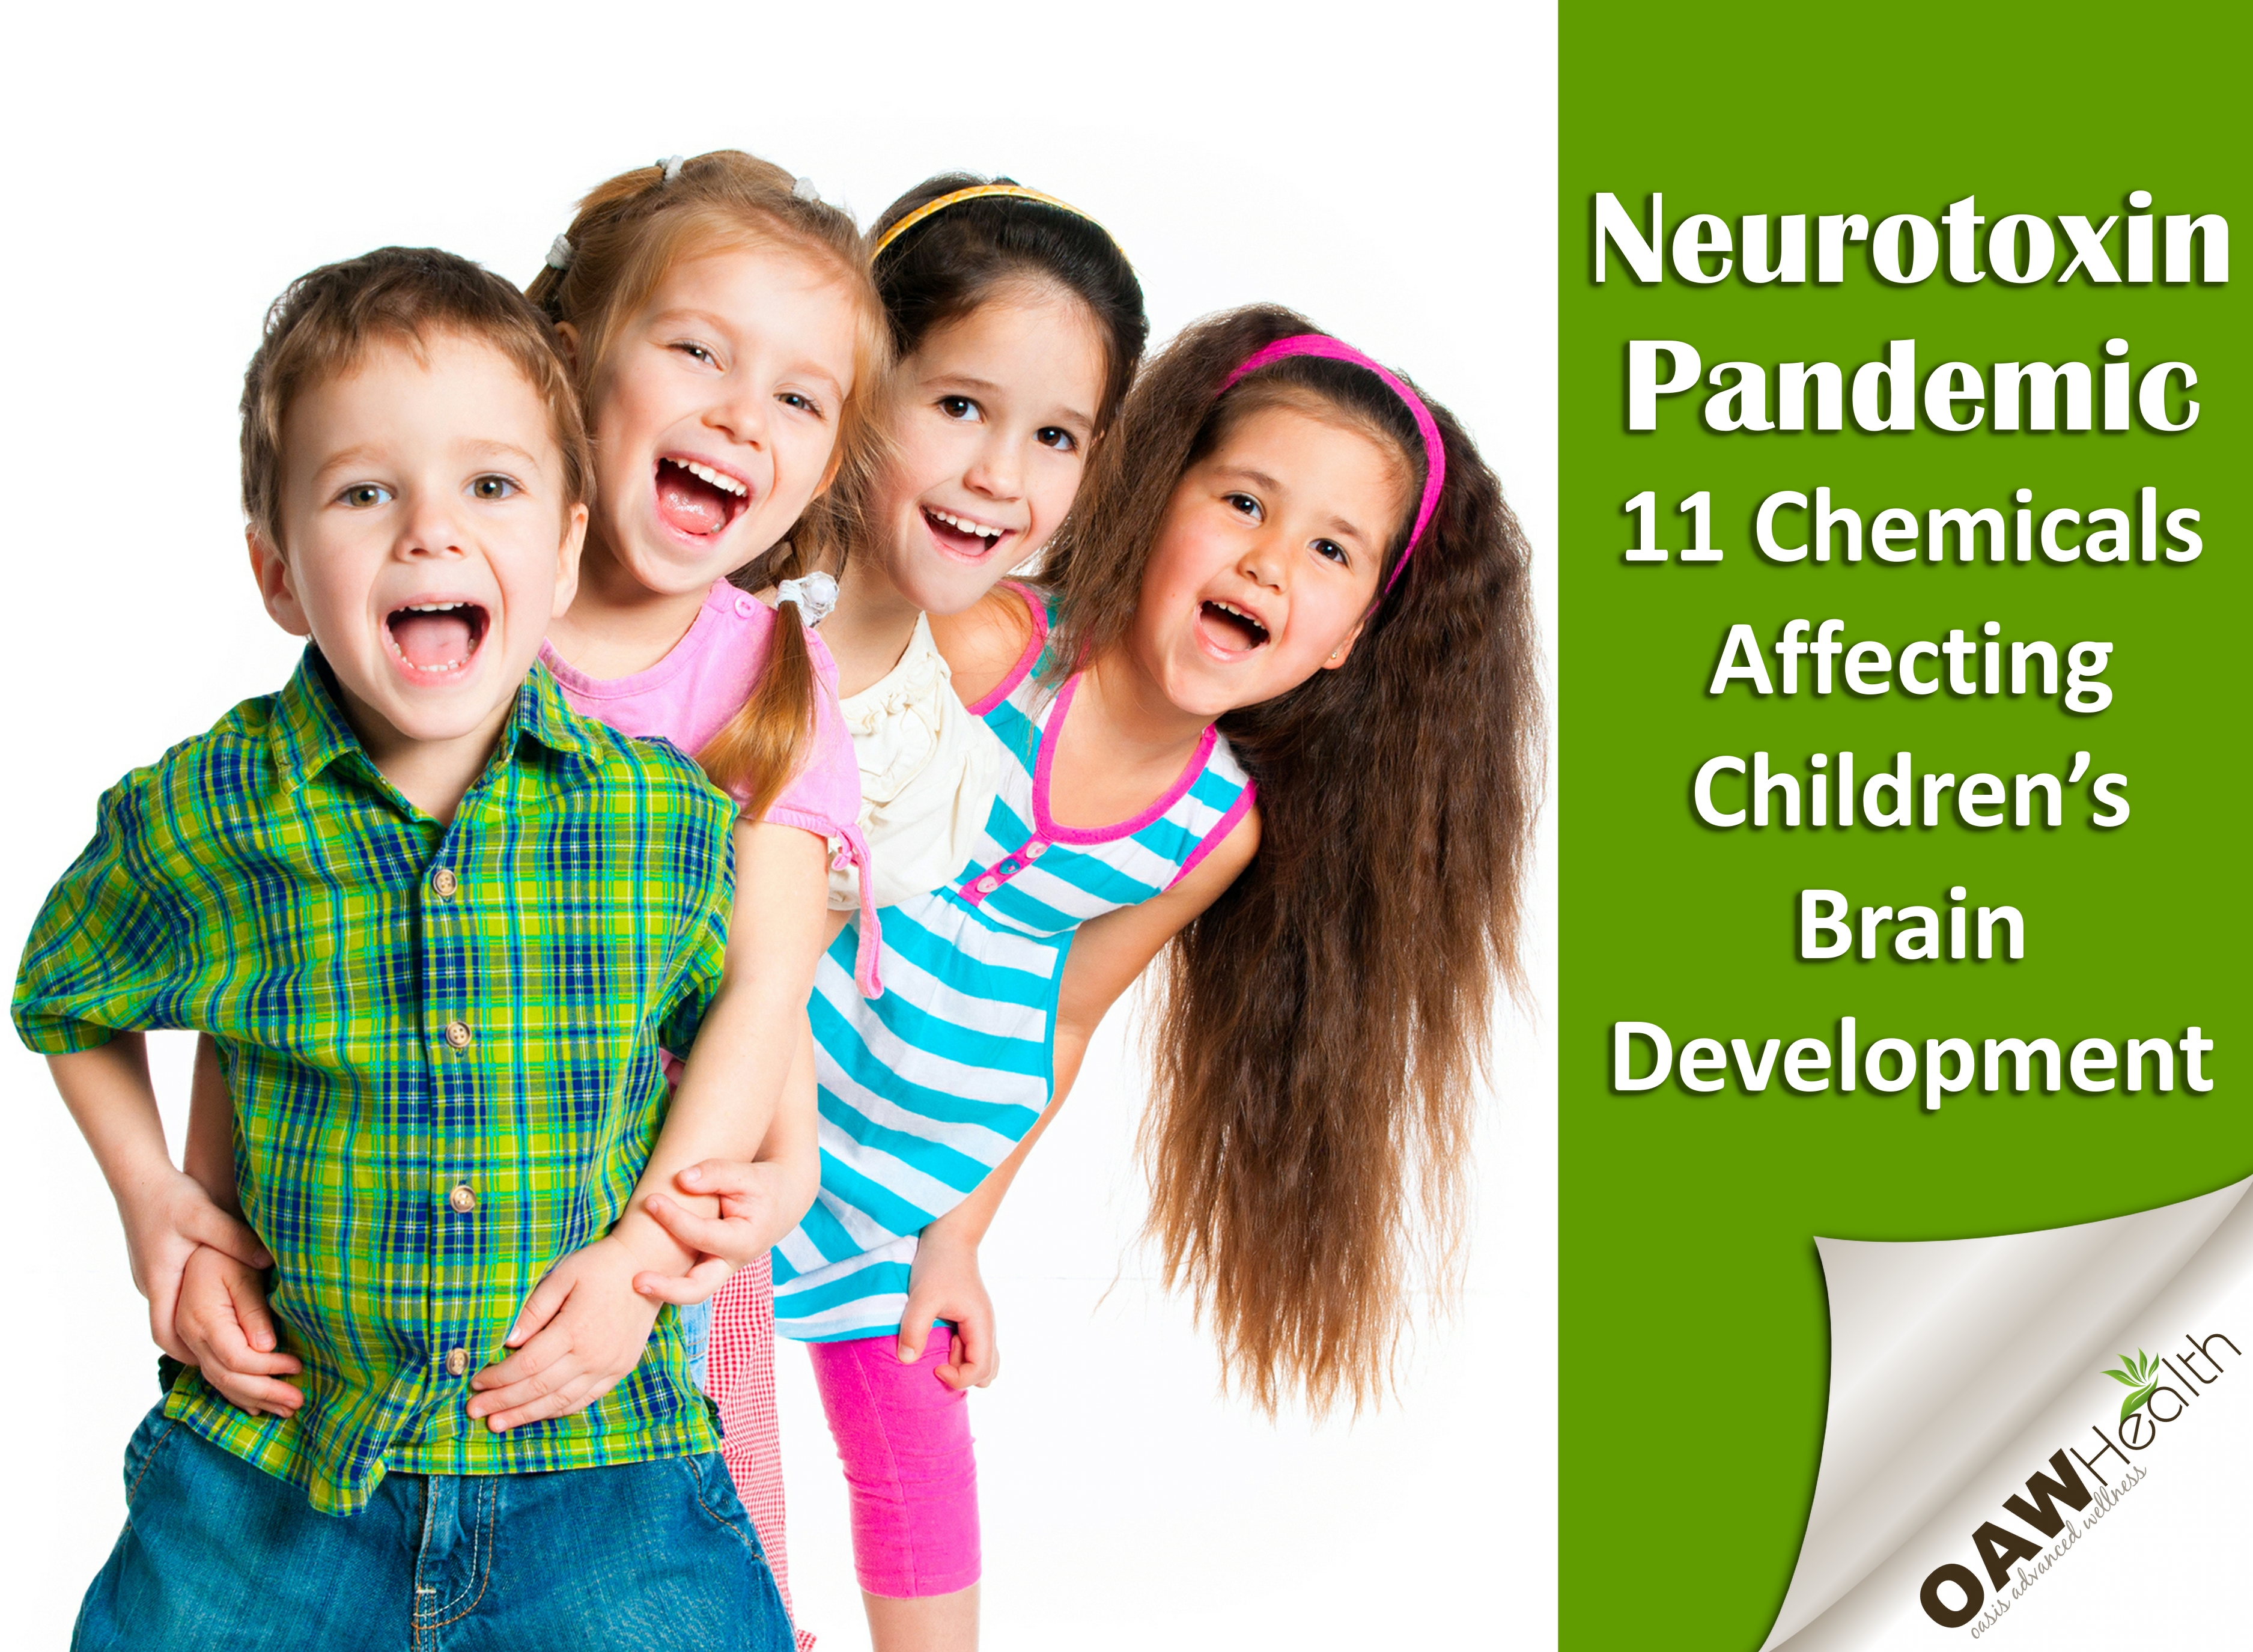 Silent Neurotoxin Pandemic: 11 Chemicals Affecting Children's Brain Development